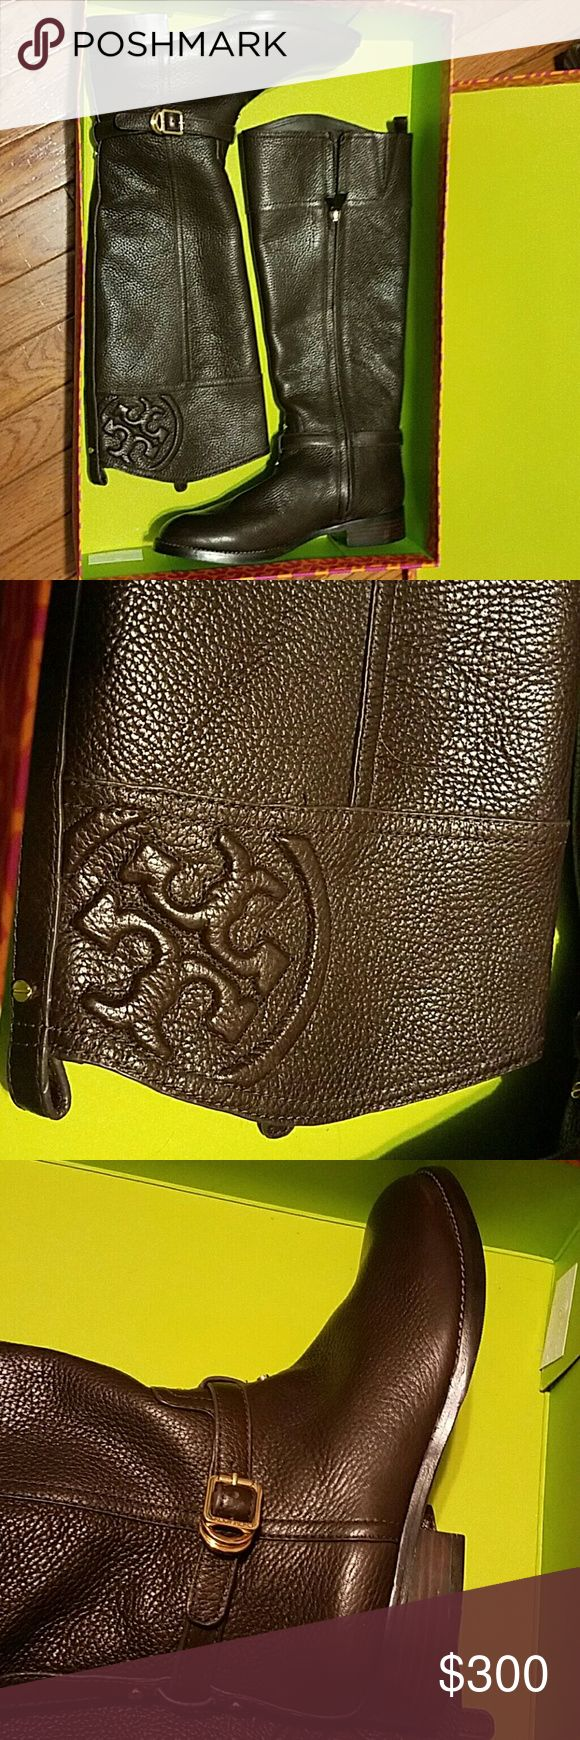 Tory Burch boots Brand New with Tags. Authentic.  Leather upper ,Fabric lining. Got this as gift but calf is too big for me. My calf size is just 12.5 so, yeah it is big for me. Market price is $495+tax. I searched online and people are selling used Marlene boots for 295 on Tradrsy and 275 here on Posh. Tory Burch Shoes